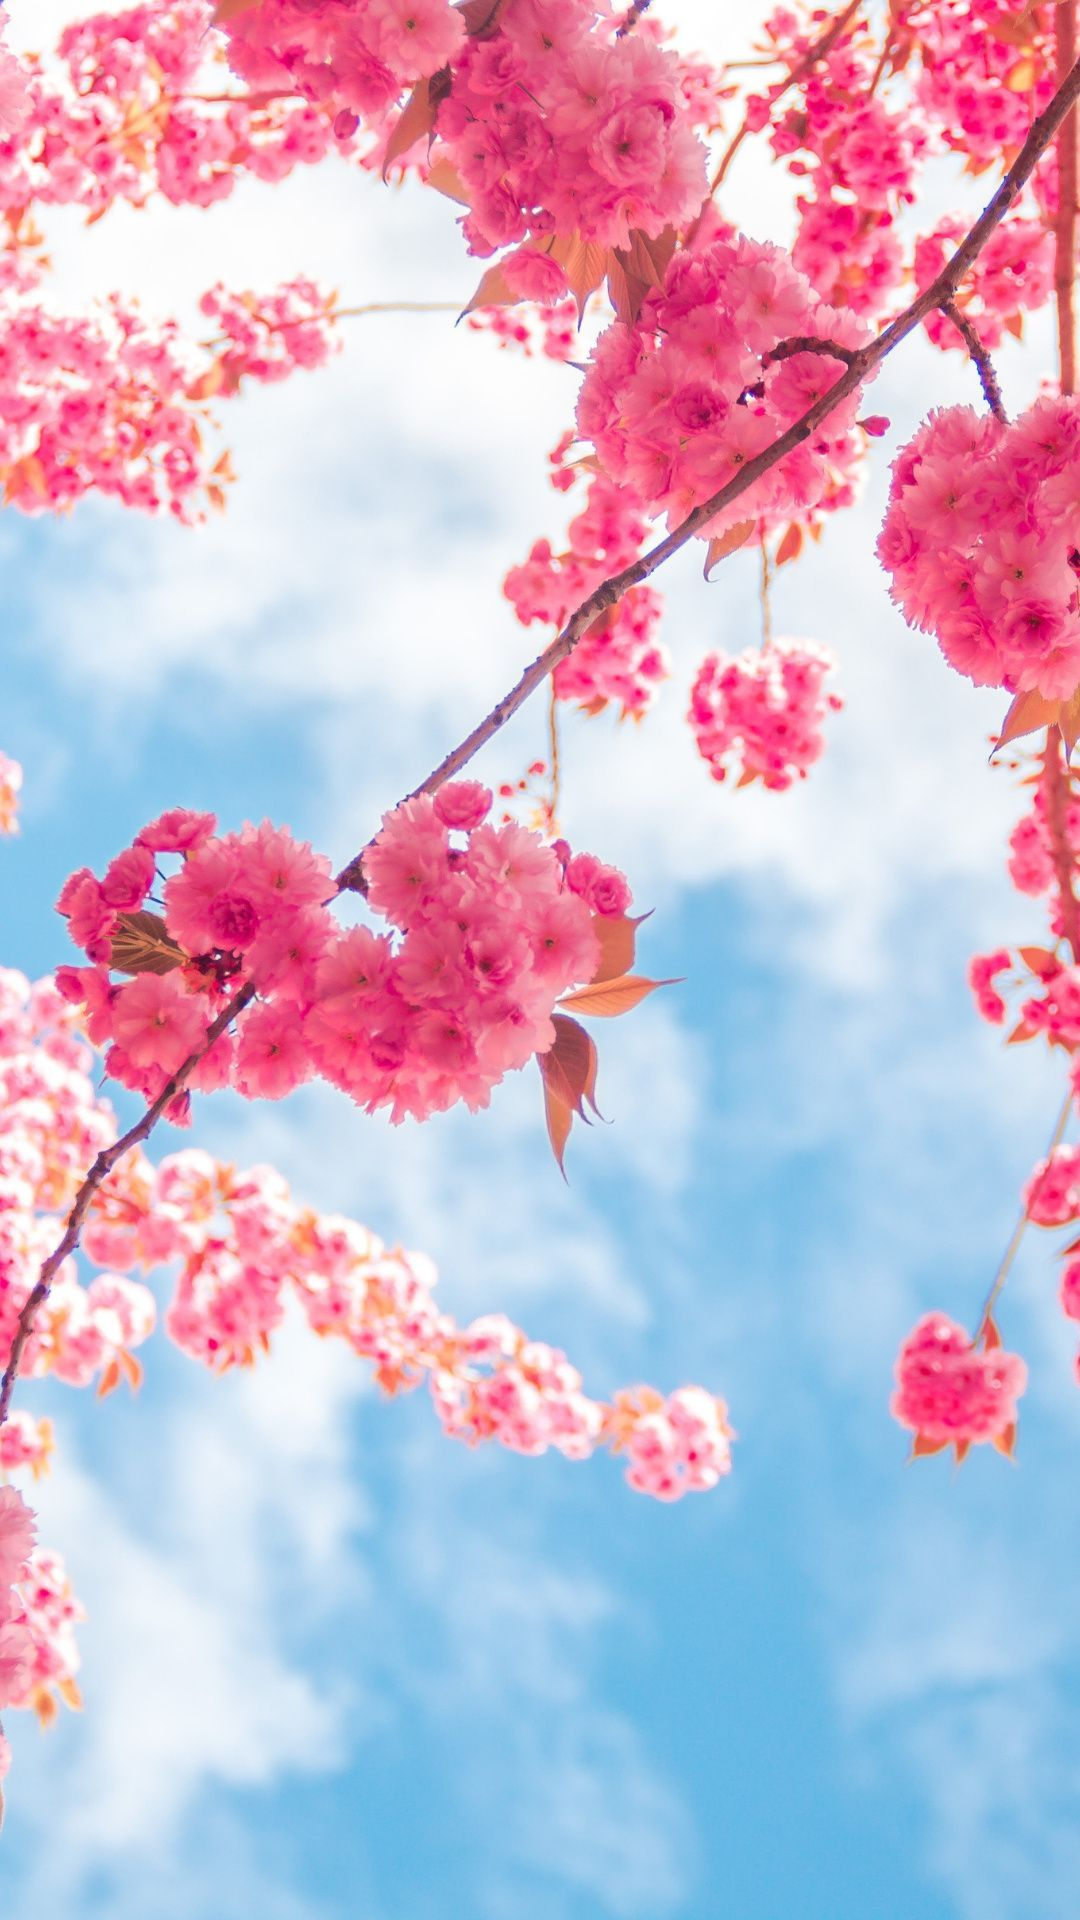 Free Spring Flower Phone Wallpapers Backgrounds – Rebeah Bailey